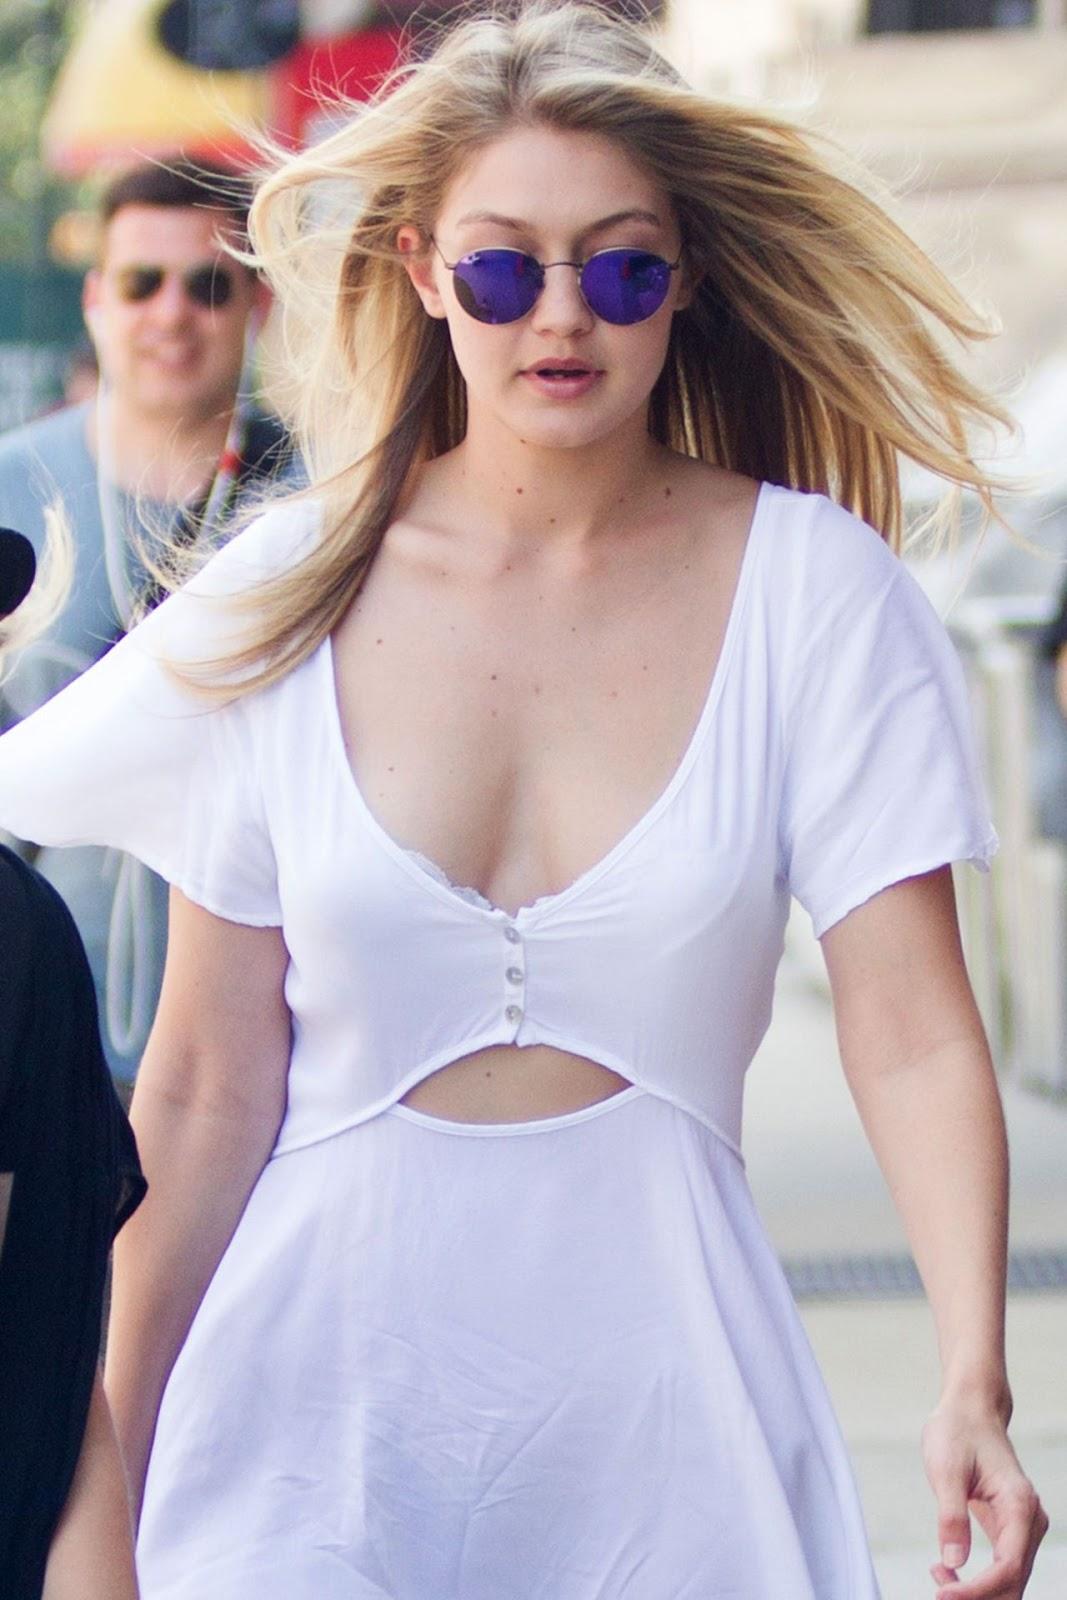 Gigi Hadid shows cleavage in a chic summer dress in NY